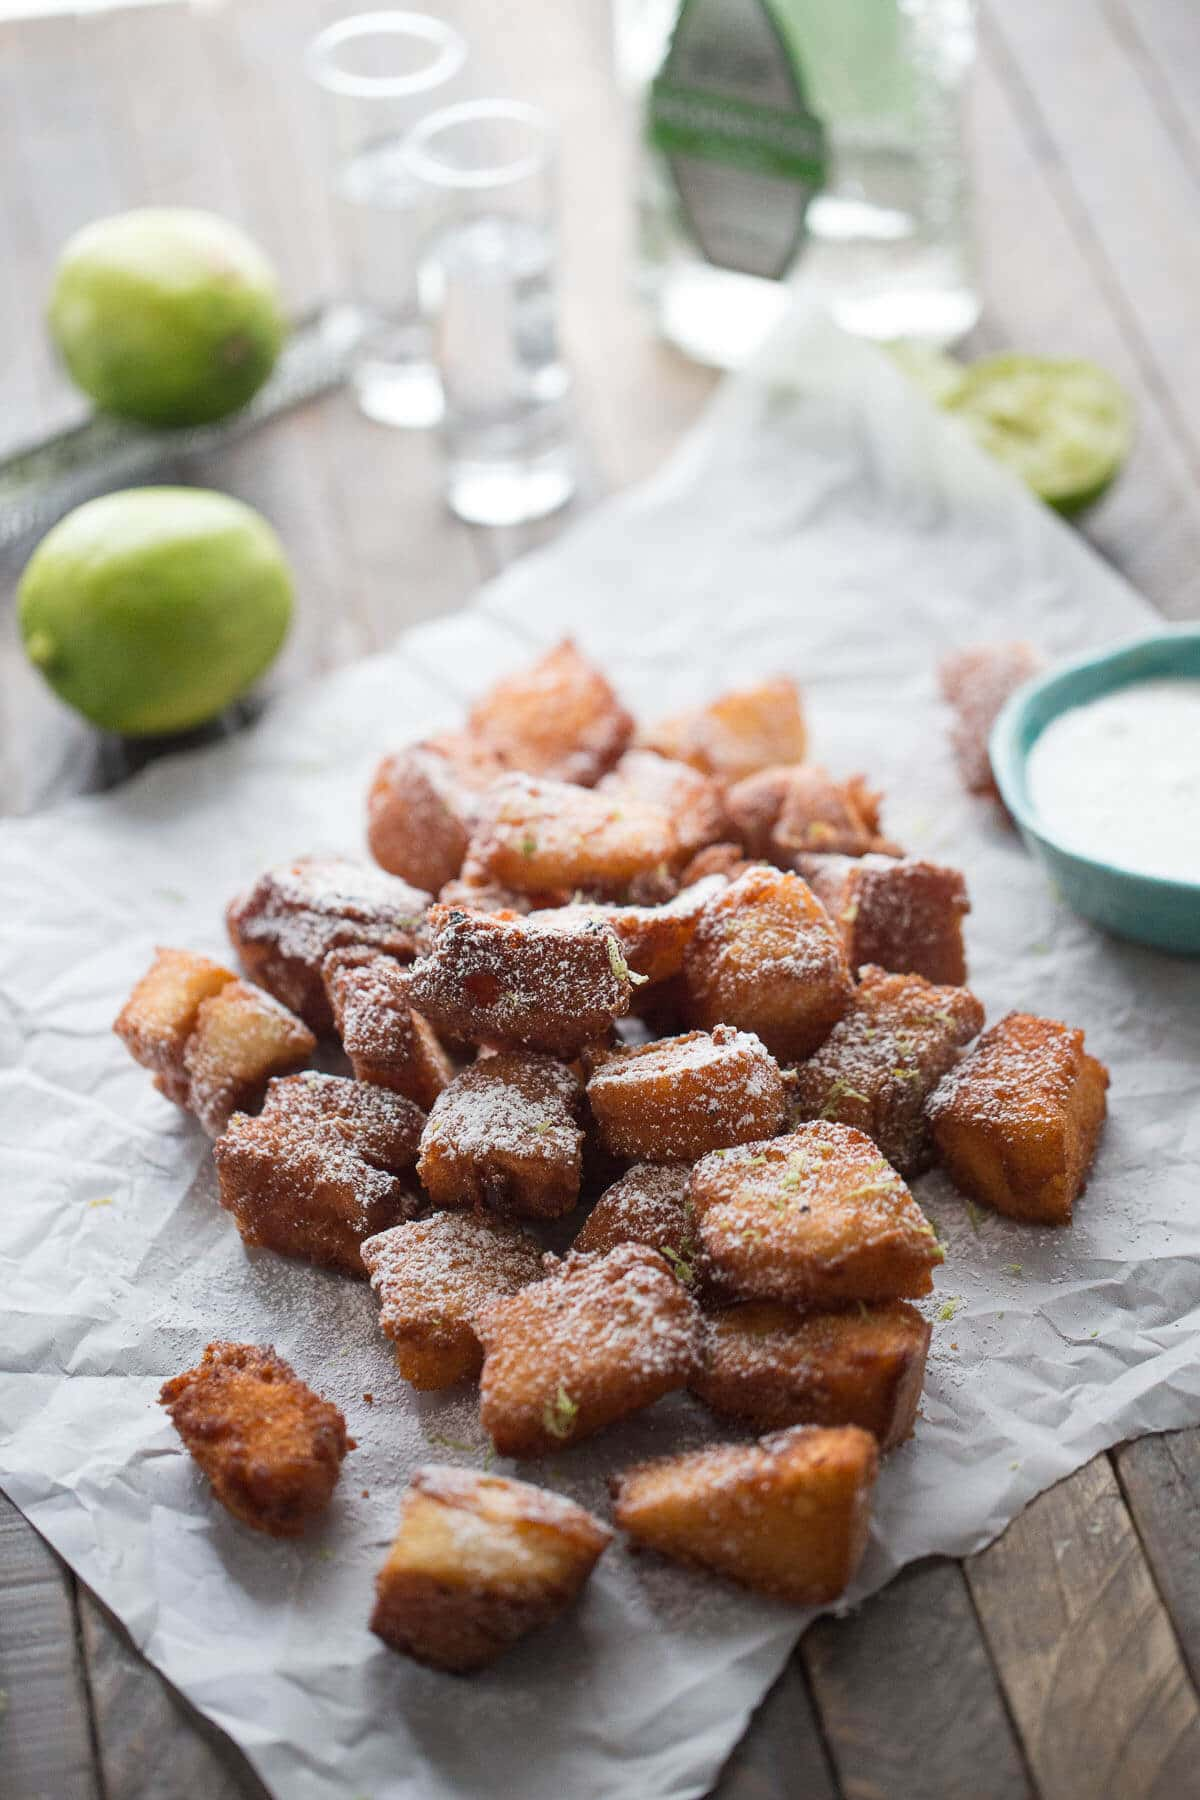 Angel food cake and tequila come together in these easy fried tequila shots!